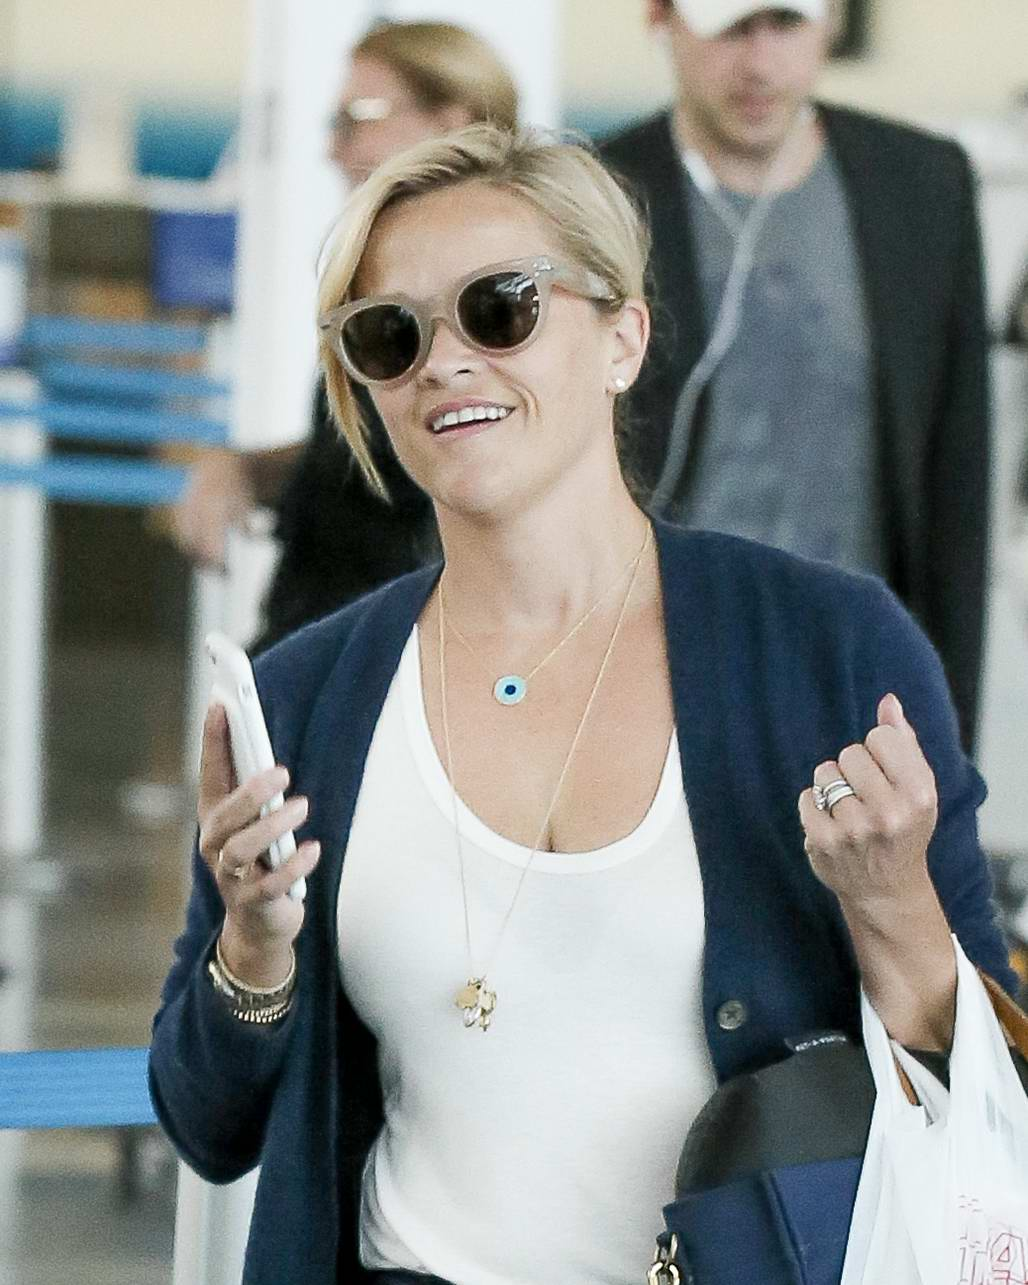 Reese Witherspoon Shows Off A New Short Haircut At Jfk Airport In New York 180817 7